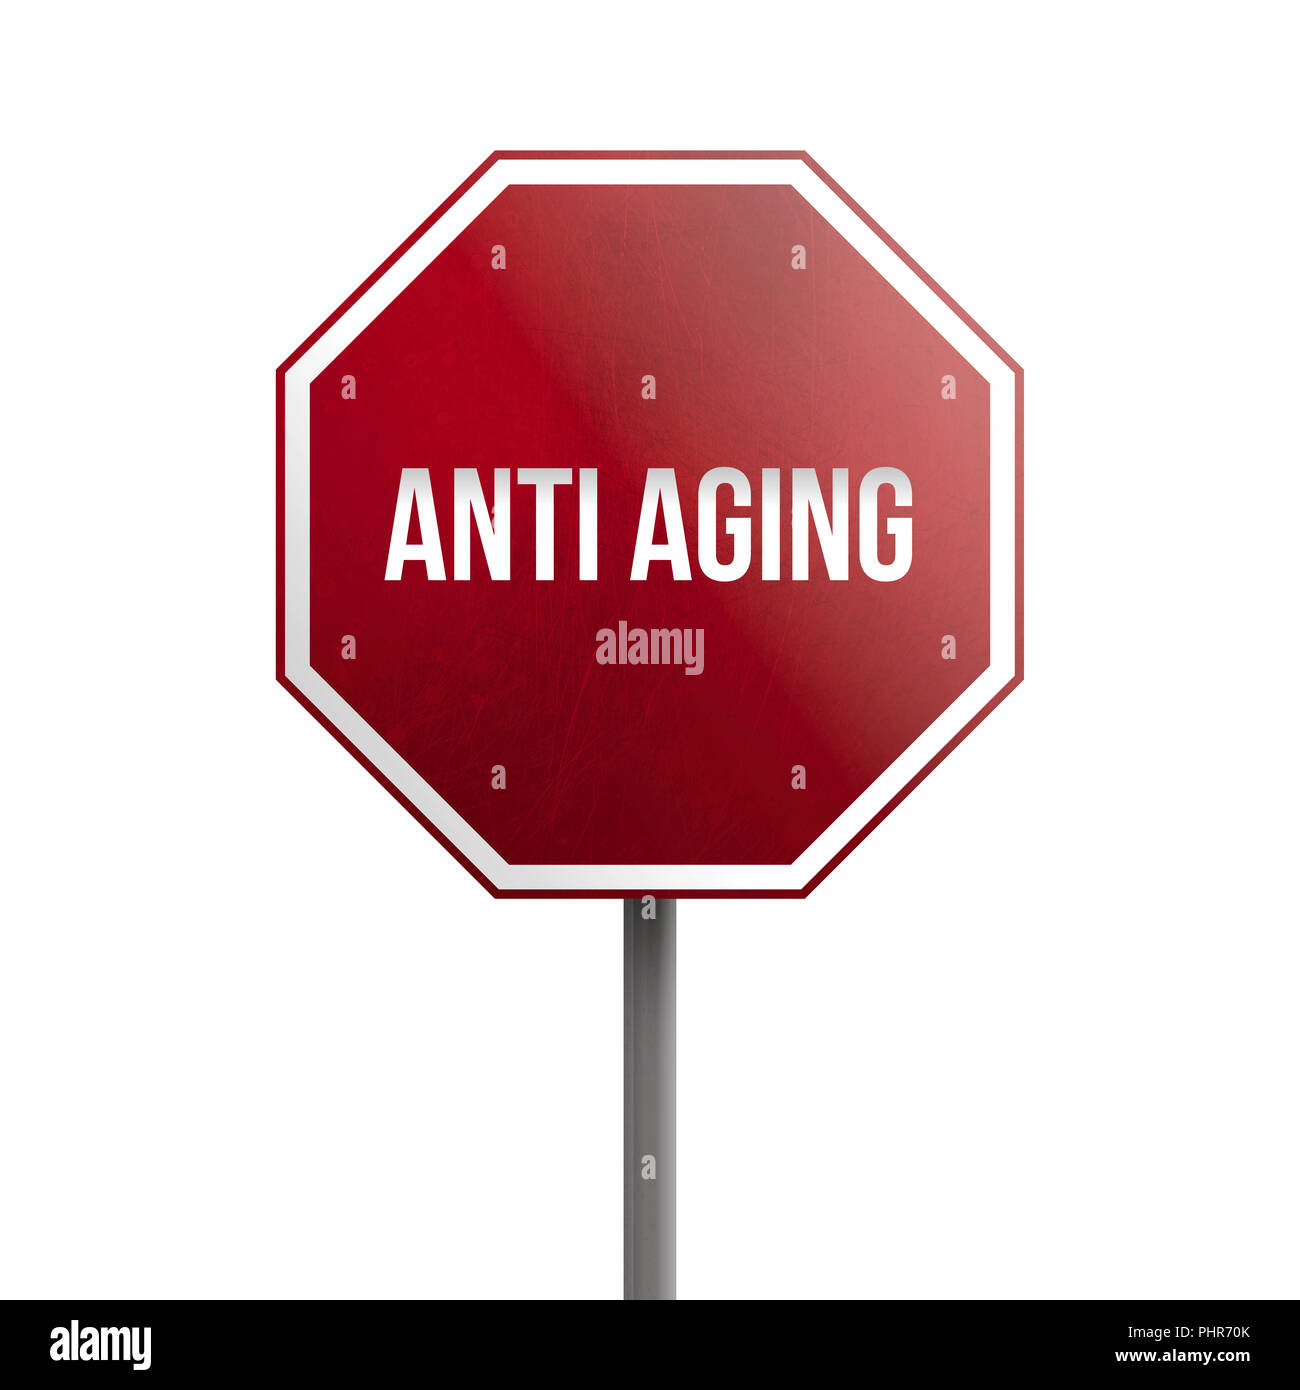 anti aging - red sign isolated on white background - Stock Image